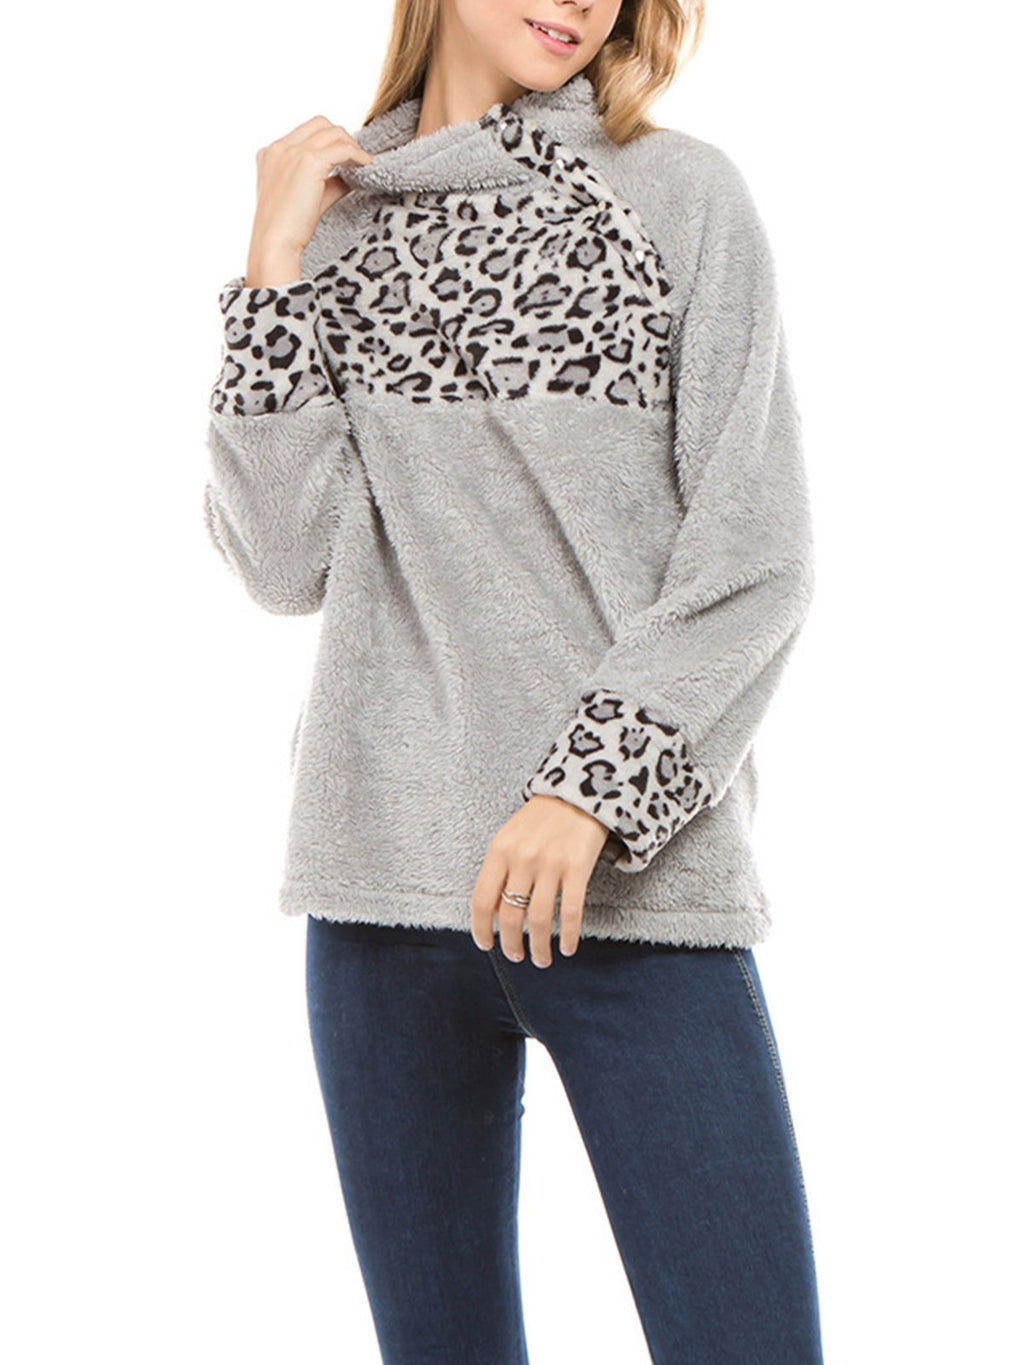 Paneled Leopard Print Chest/Cuff Loose Velour Swaetshirt